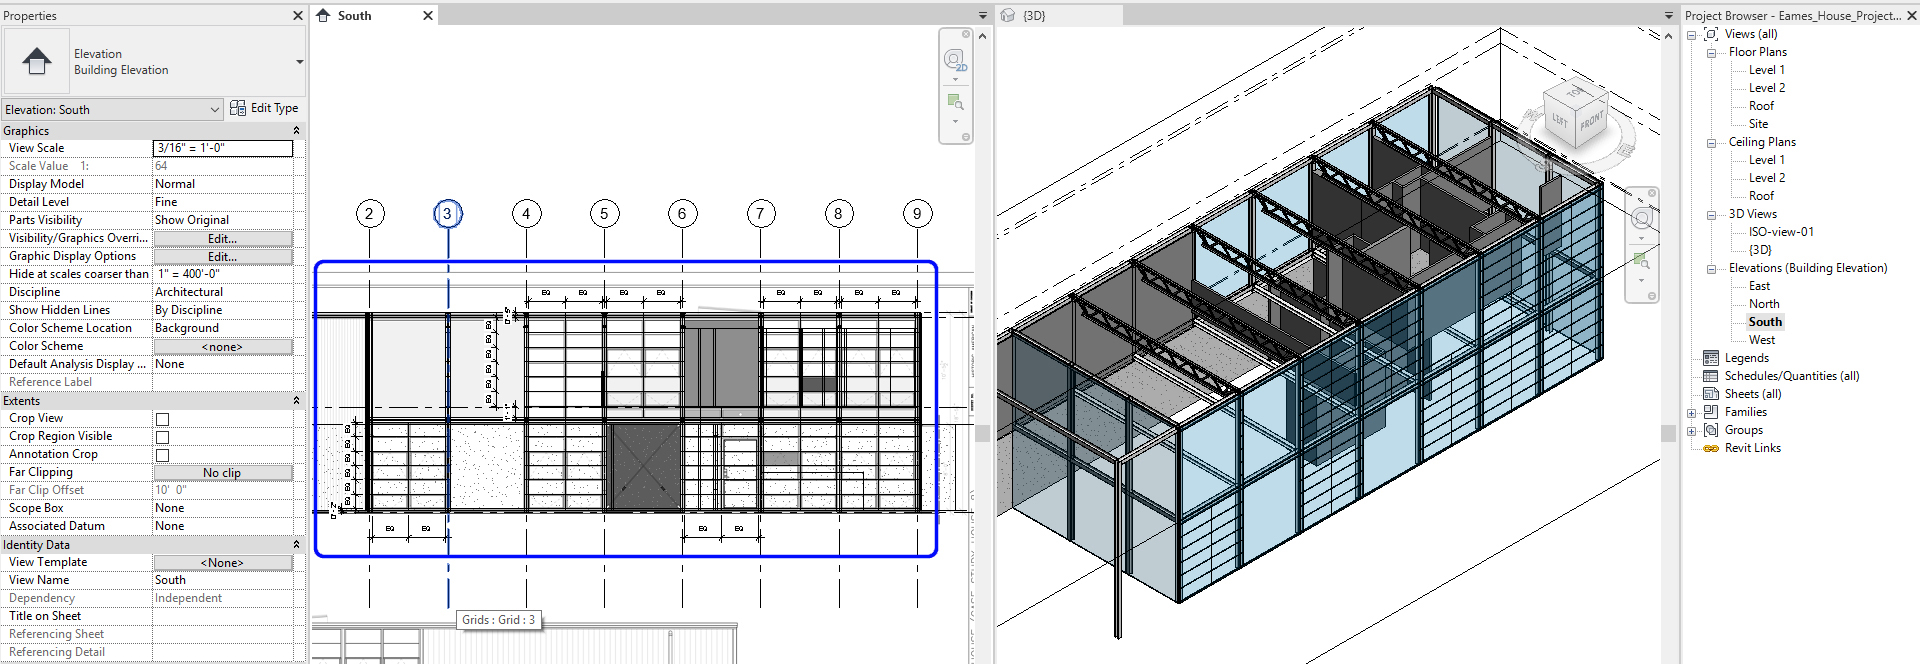 It shows the resulting image after creating curtainwall grids.